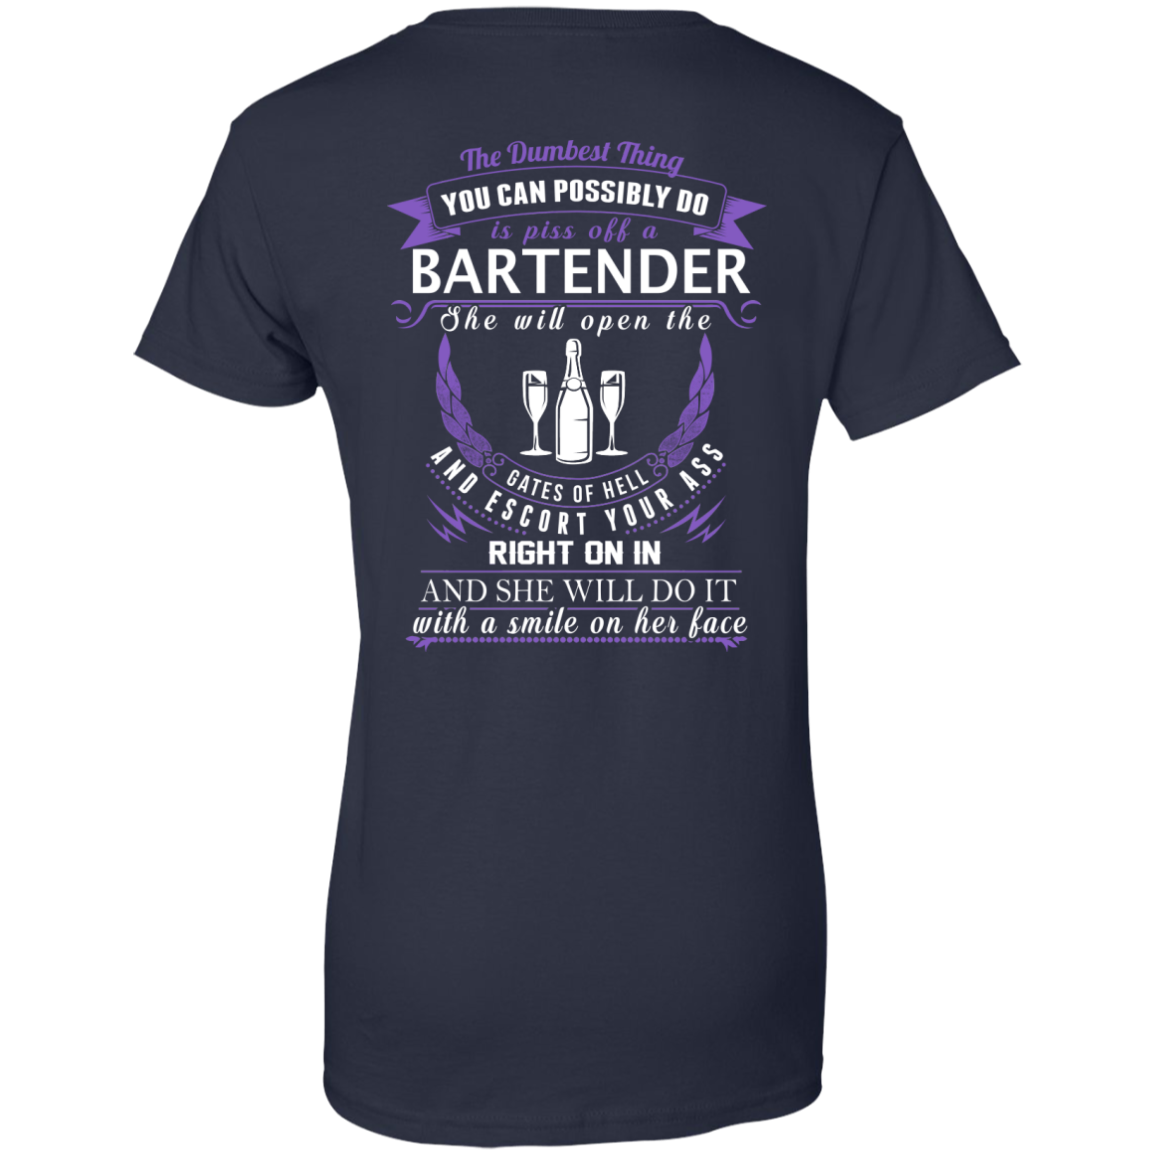 The Dumbest Thing...Bartender...With a smile on her face - TheSunCat.com - 12